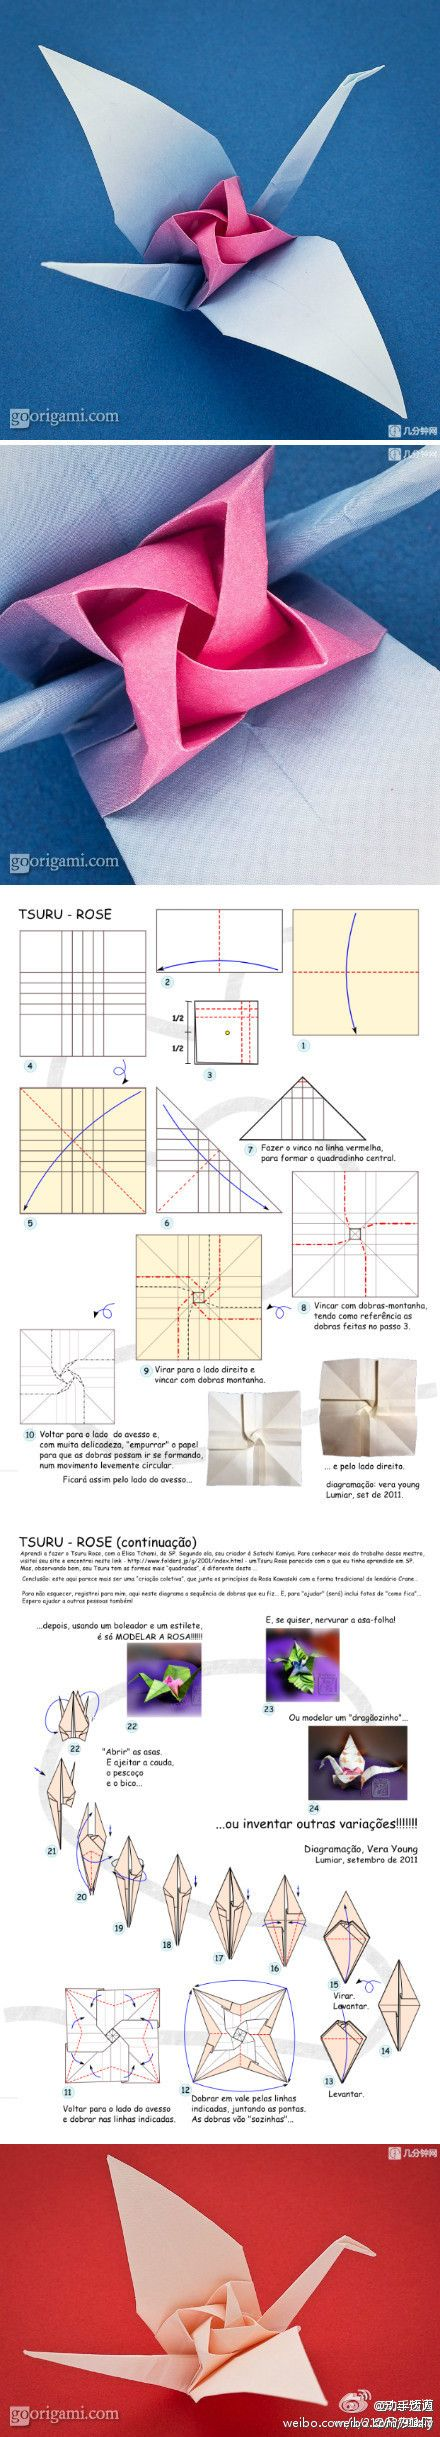 adorno céltico, a mí me lo parece...have never seen origami like that...MUST try :)))